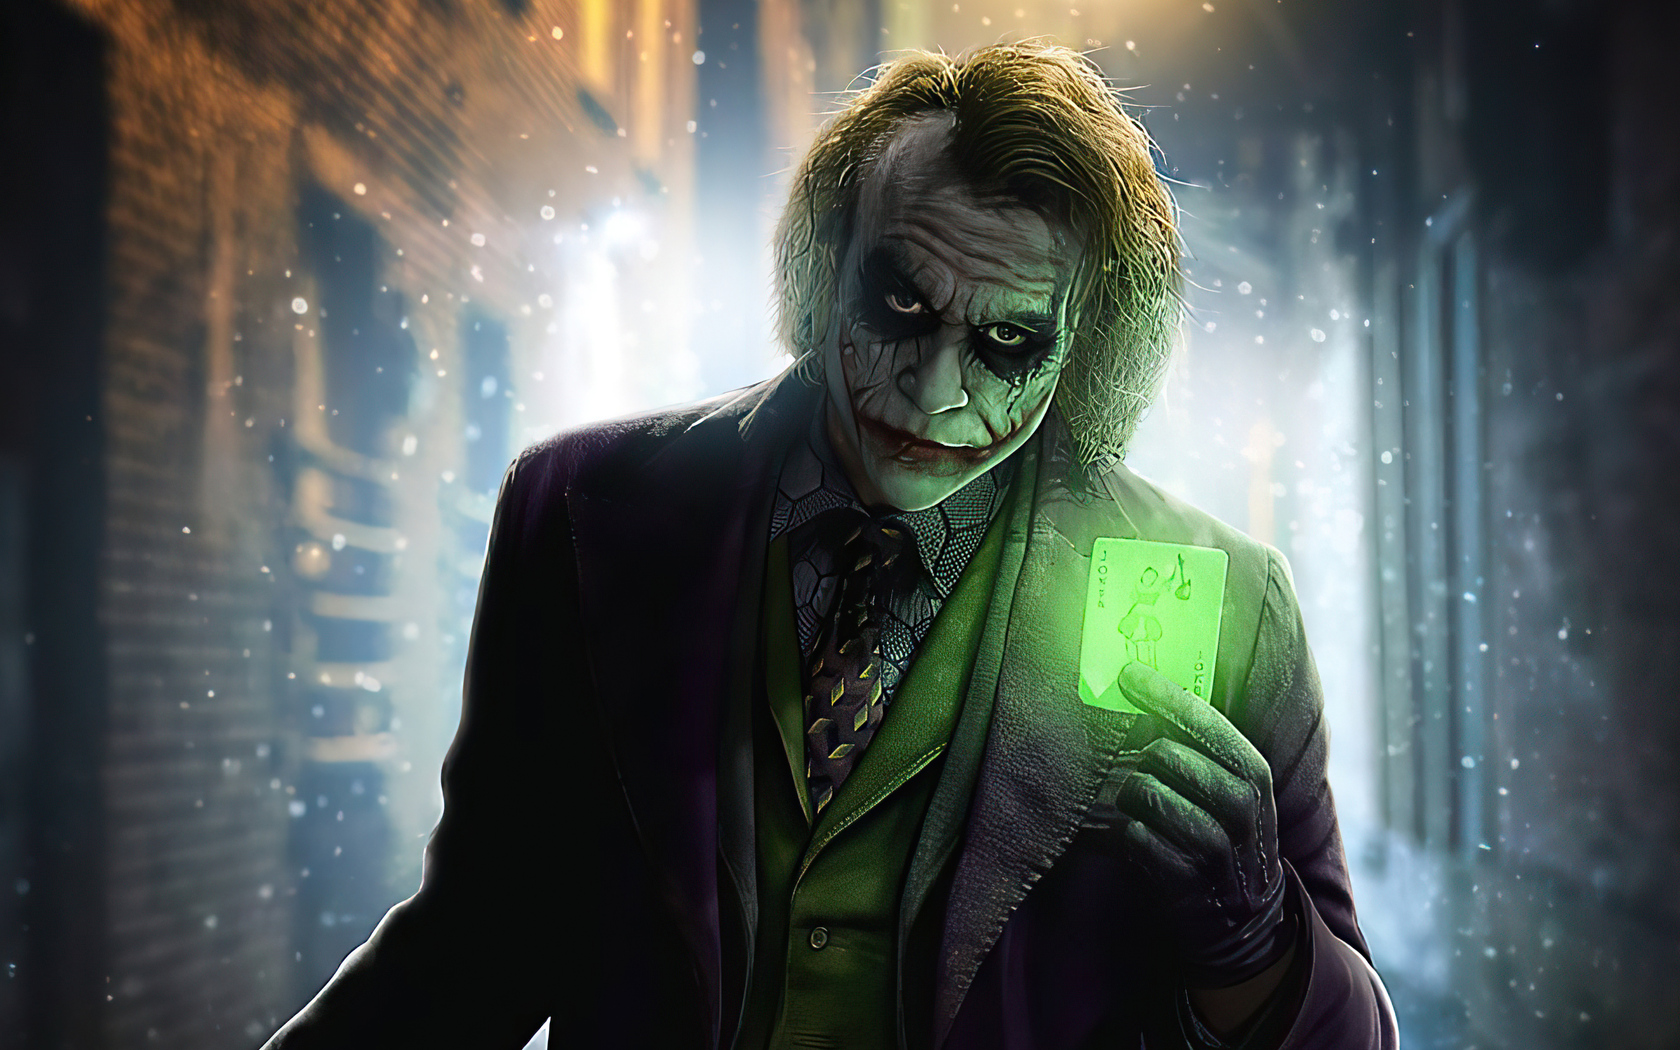 joker-green-card-d9.jpg